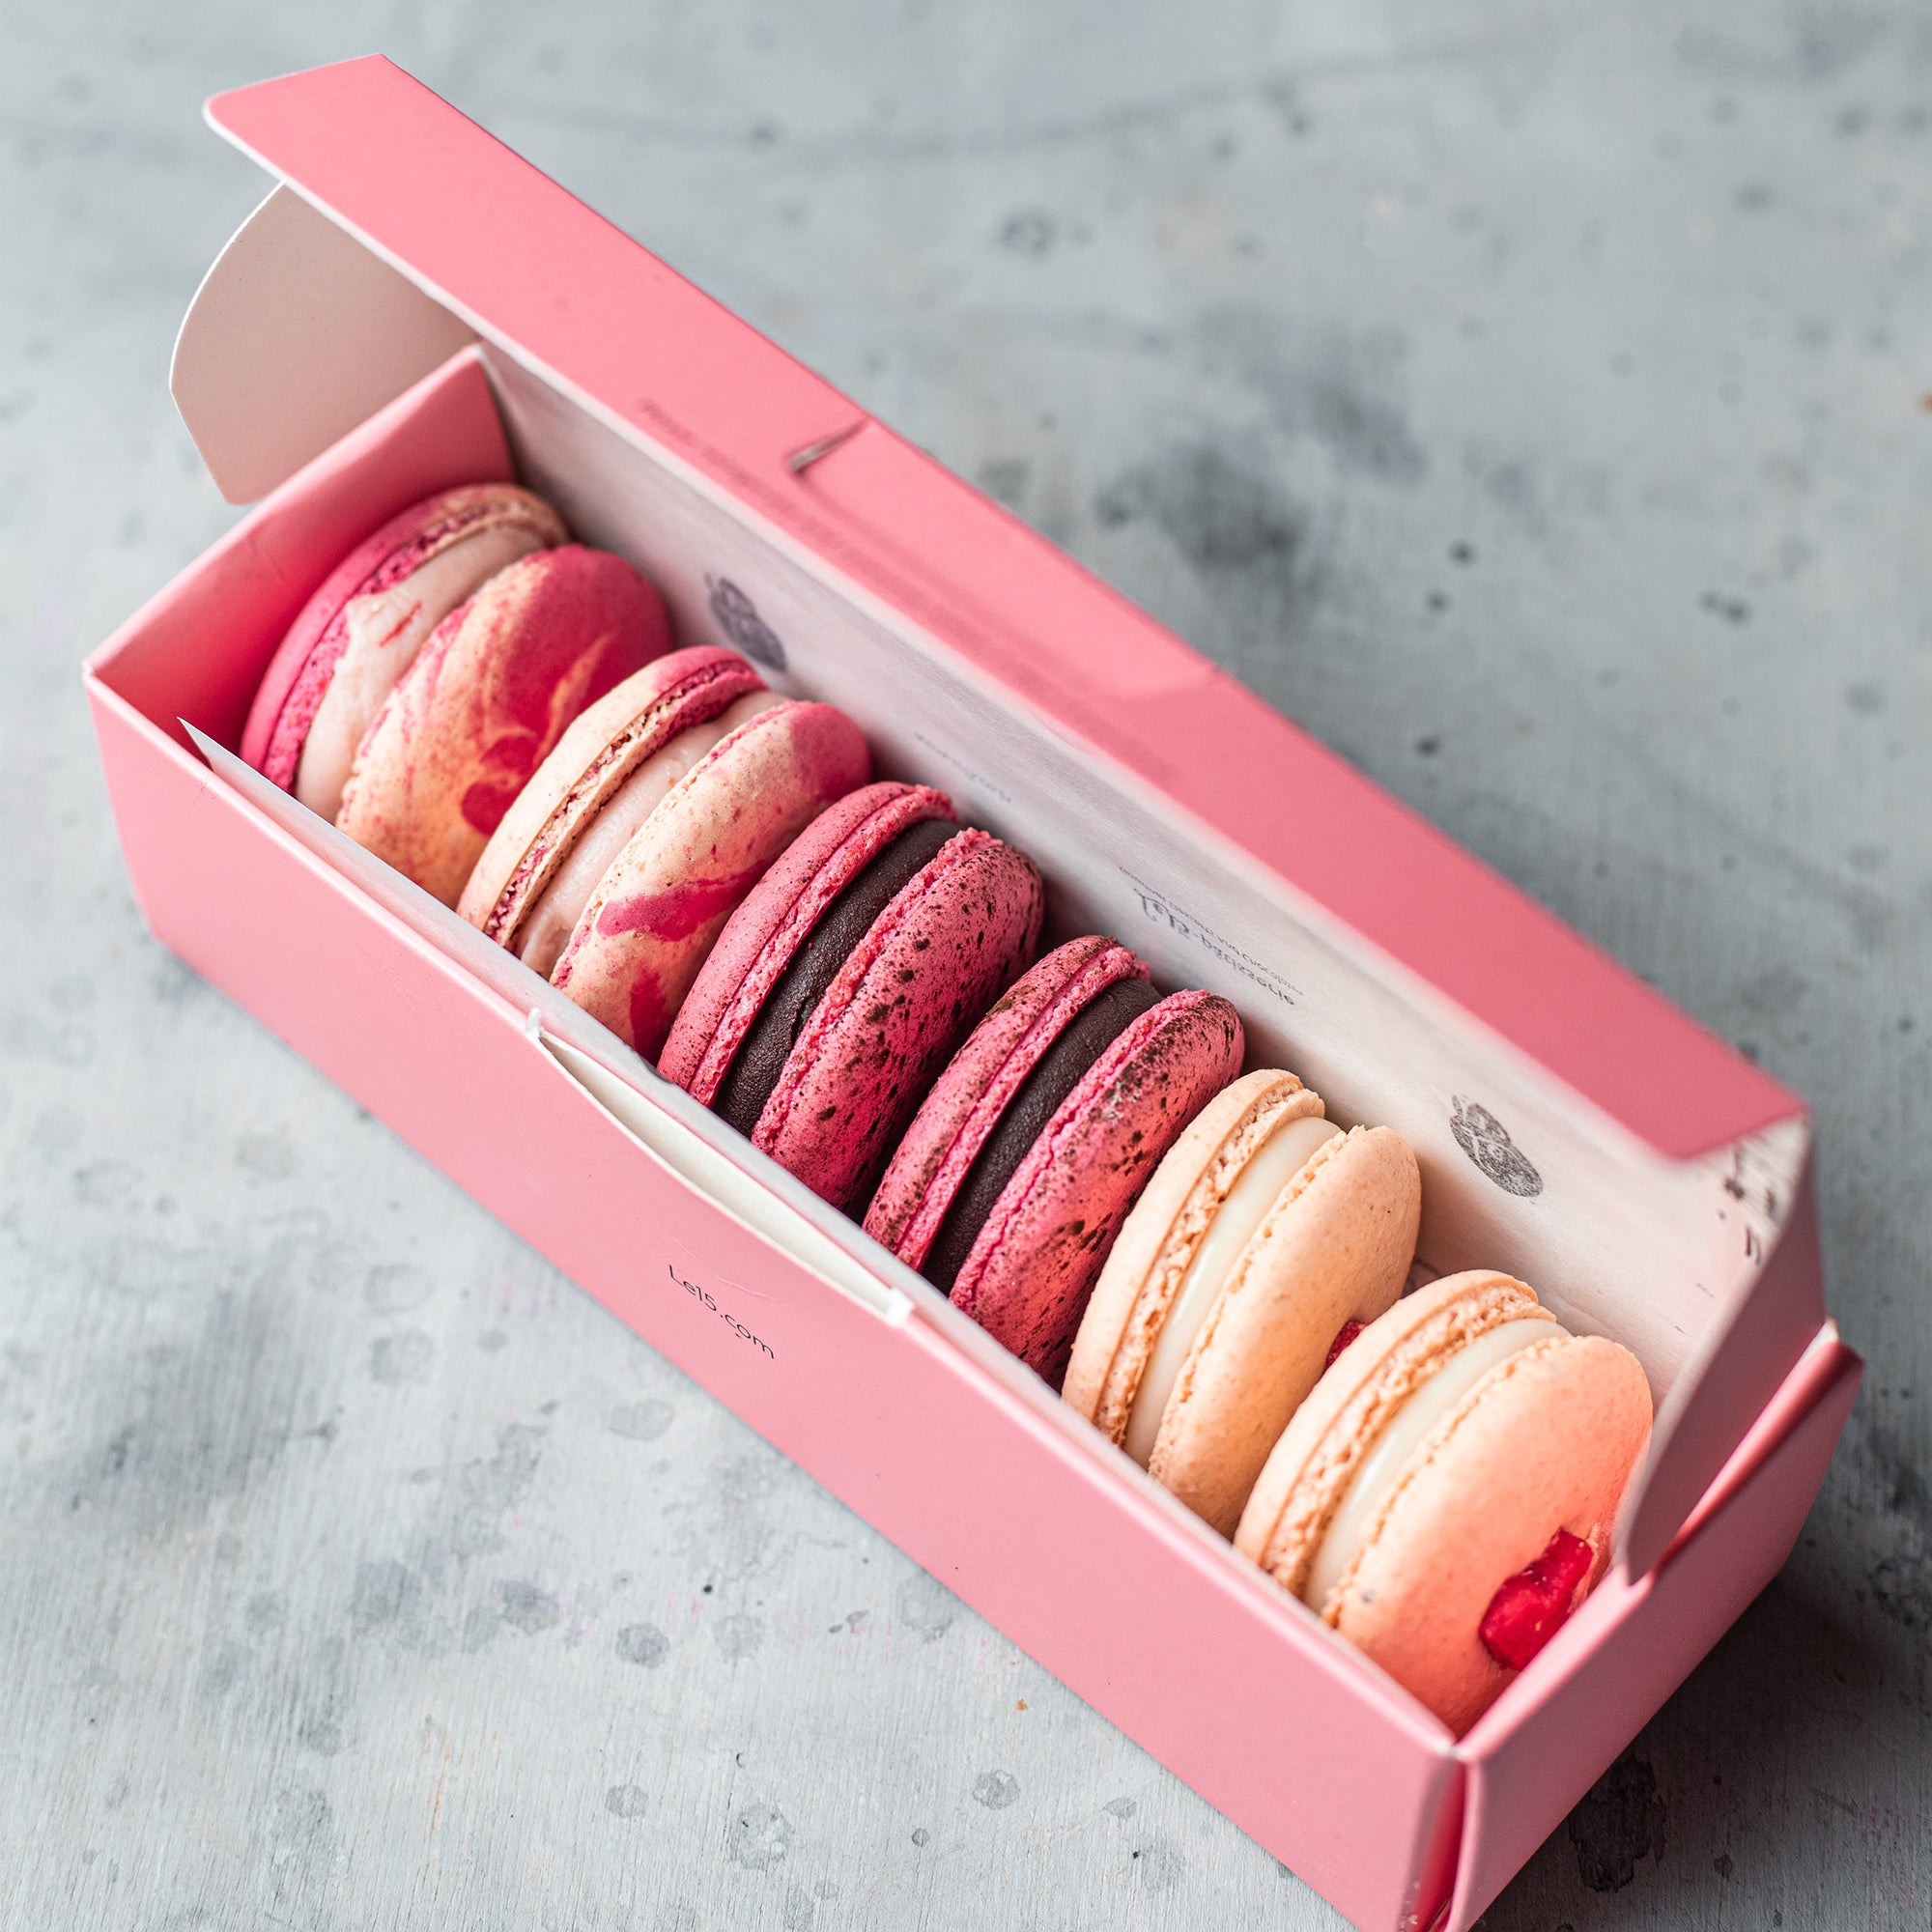 Love at First Bite Macaron Box of 6